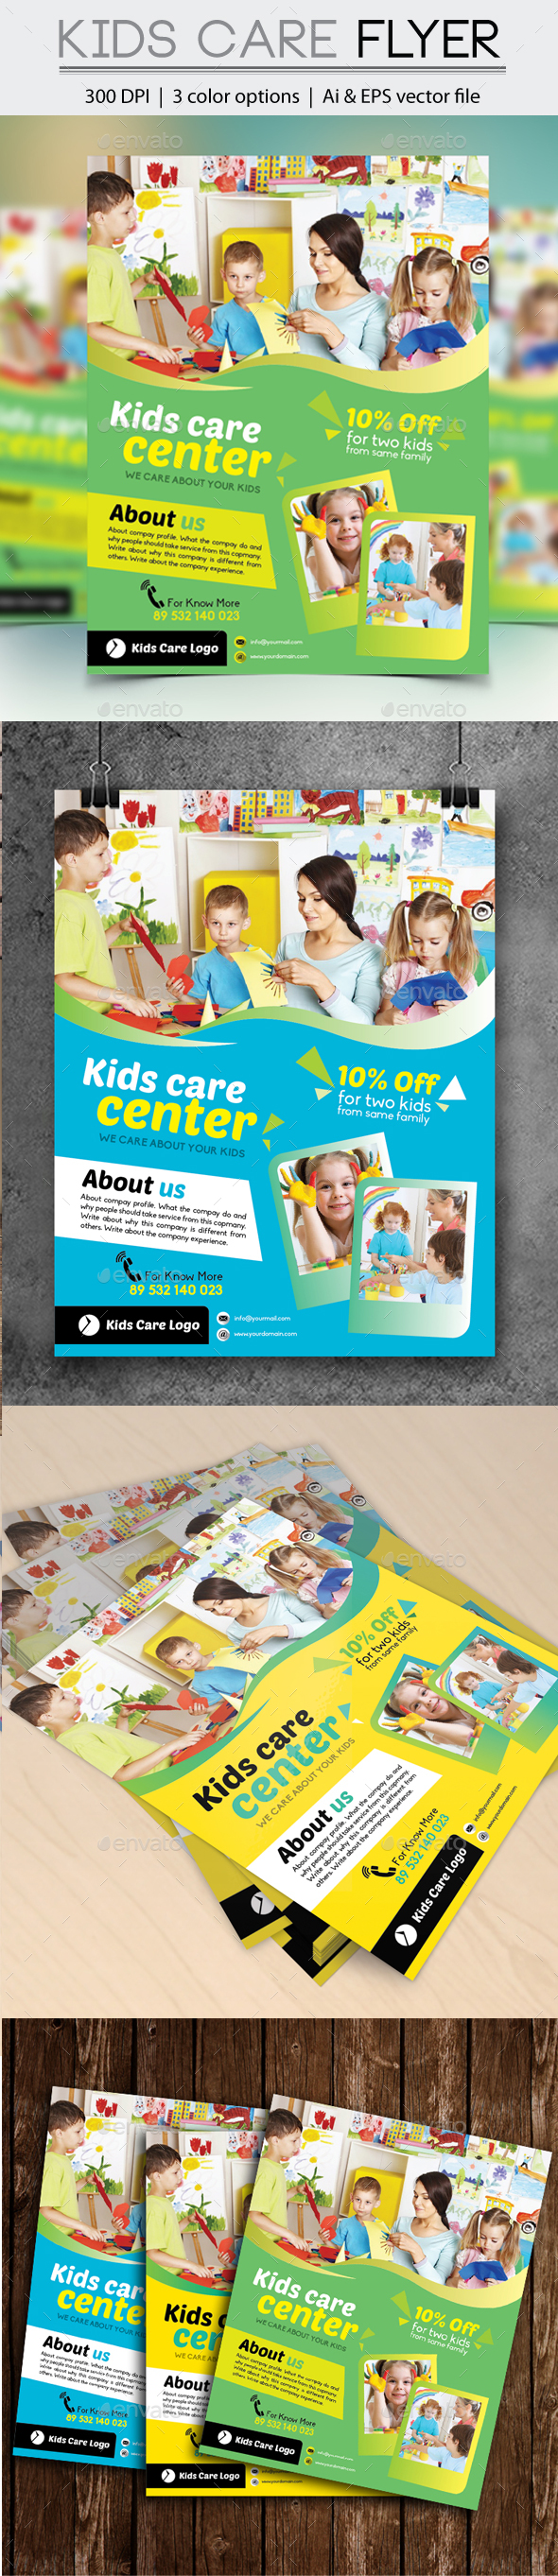 Kids Care Flyer - Commerce Flyers